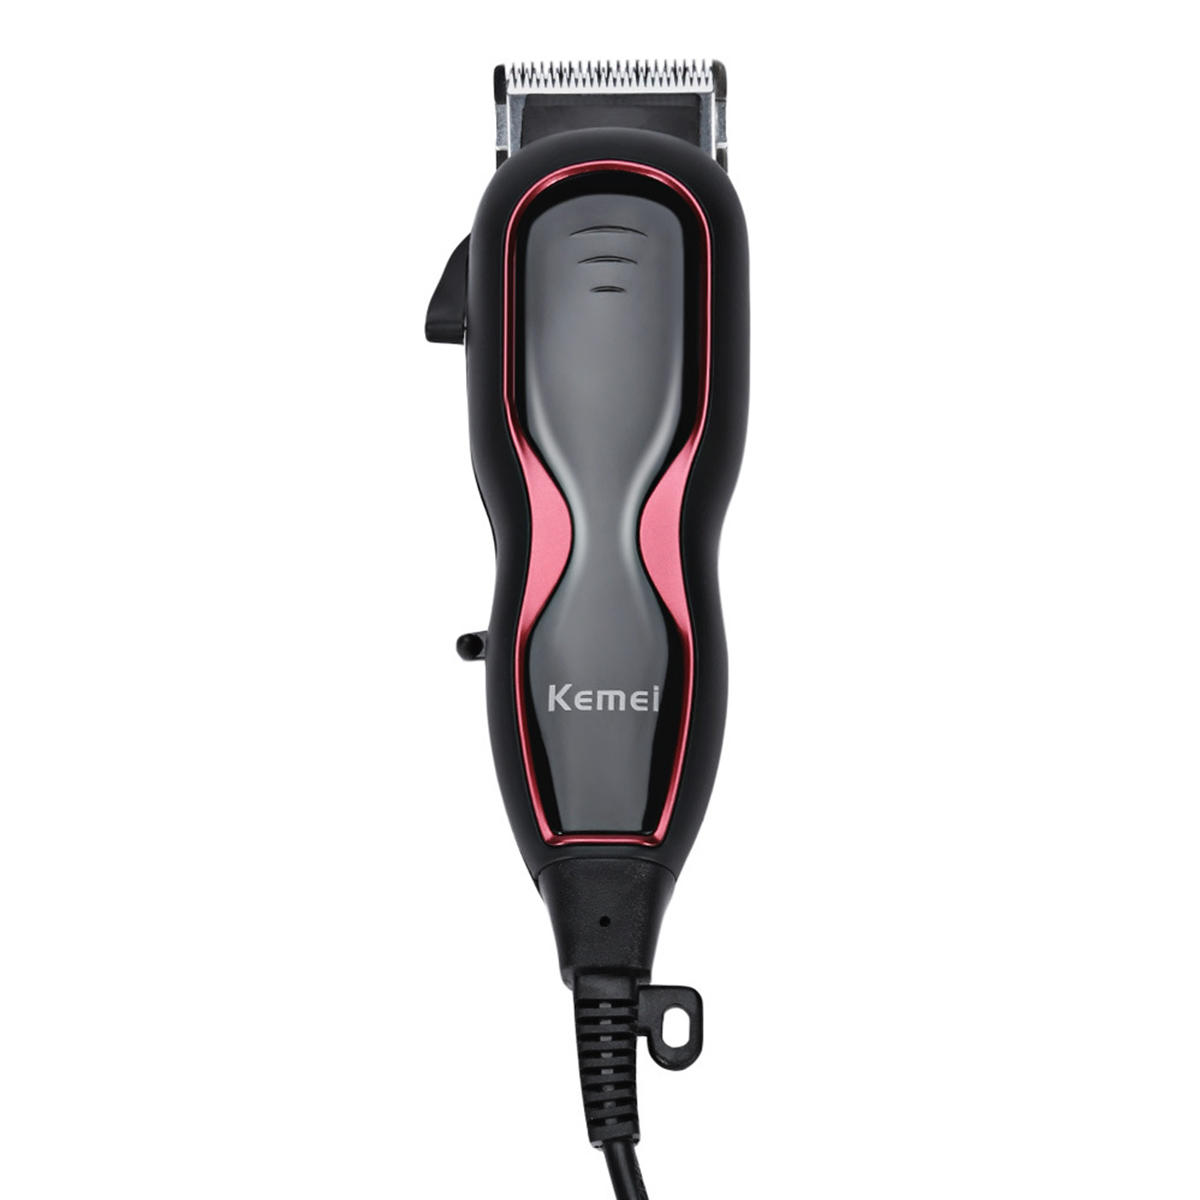 KEMEI KM-1027 Rechargeable Professional Hair Clipper Mens Shaver Trimmer Grooming Set